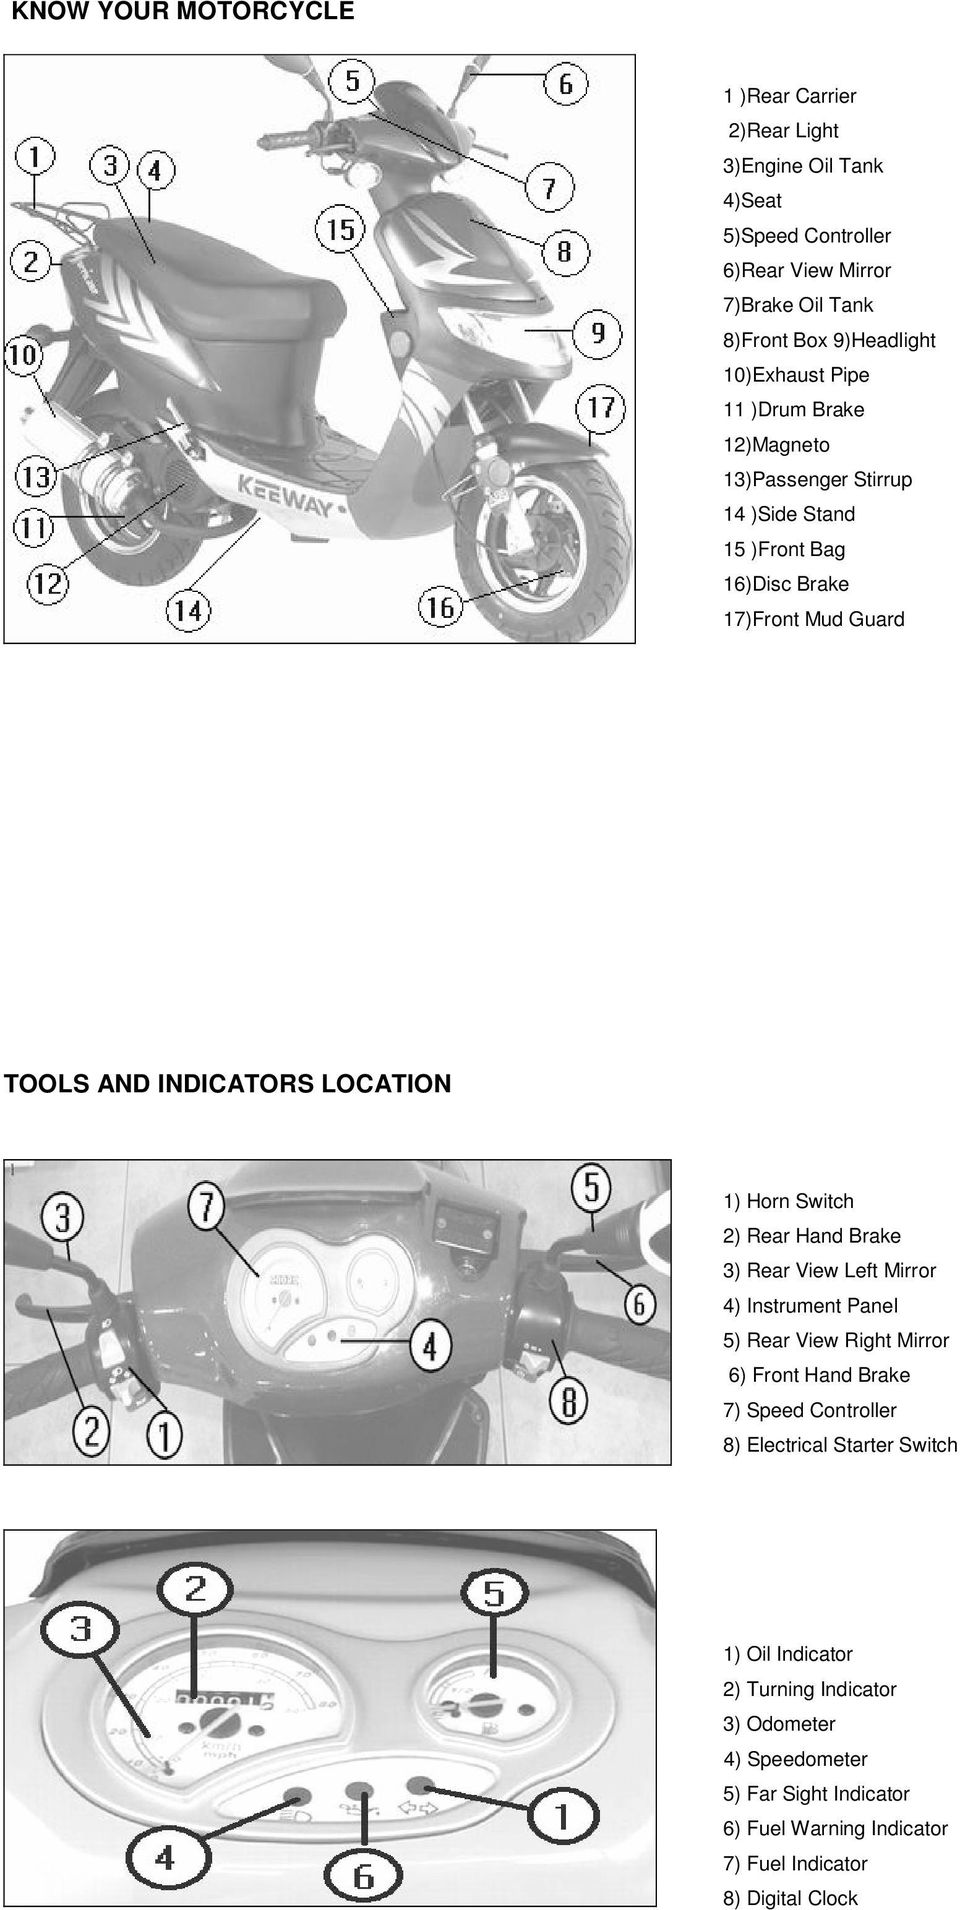 Horn Switch 2) Rear Hand Brake 3) Rear View Left Mirror 4) Instrument Panel 5) Rear View Right Mirror 6) Front Hand Brake 7) Speed Controller 8) Electrical